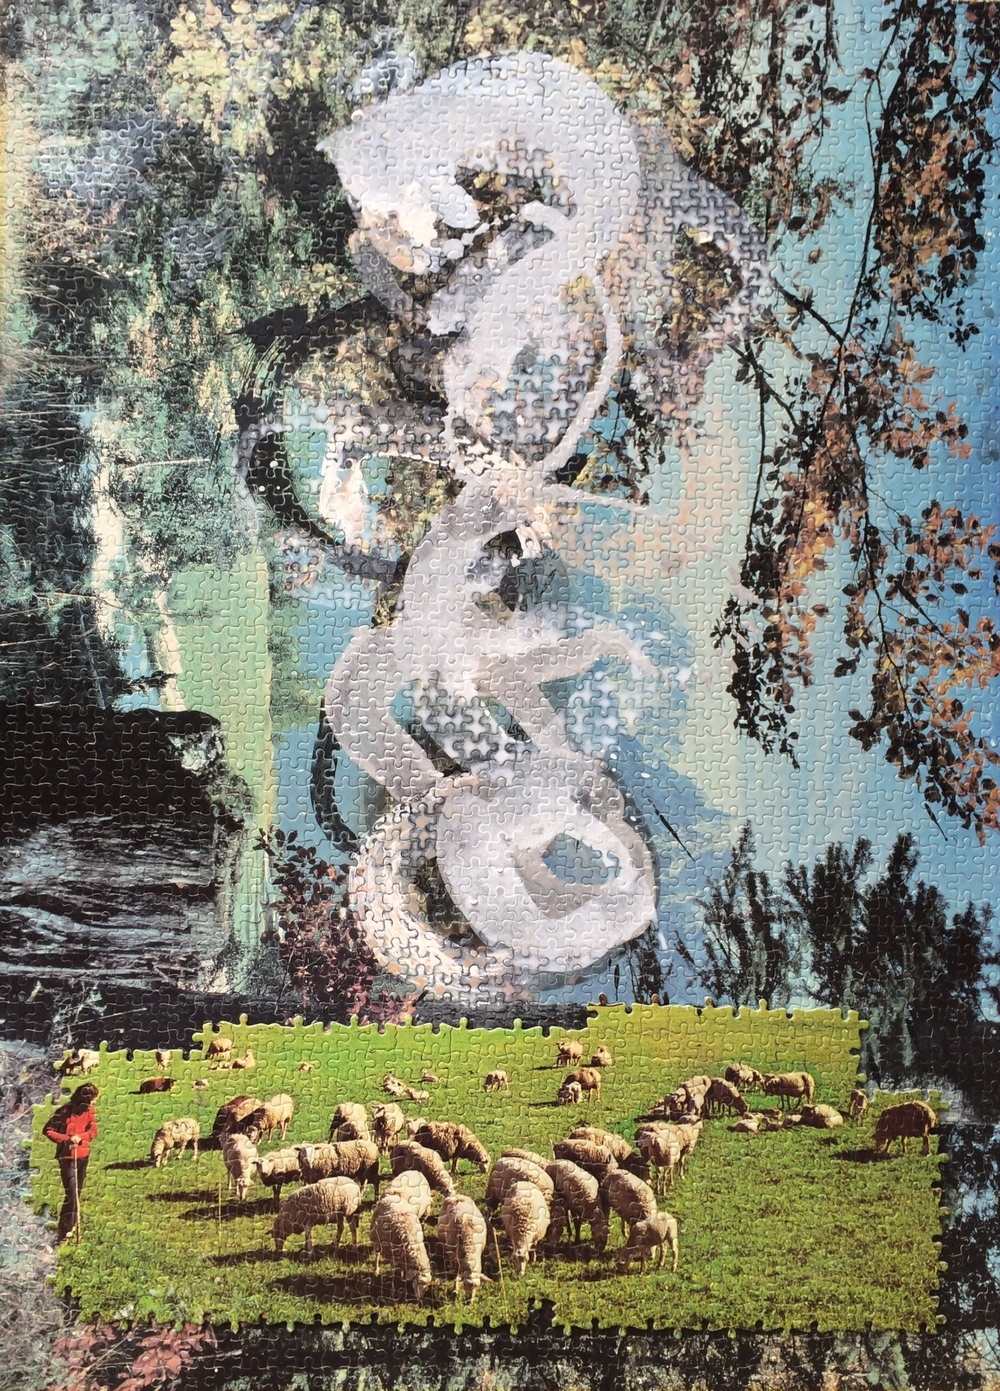 Untitled with Sheep 2007-2011, acrylic and jigsaw collage on jigsaw panel, 93x68 cm  Copyright © Tennyson Woodbridge, 1963 to present.   All appropriation rights reserved